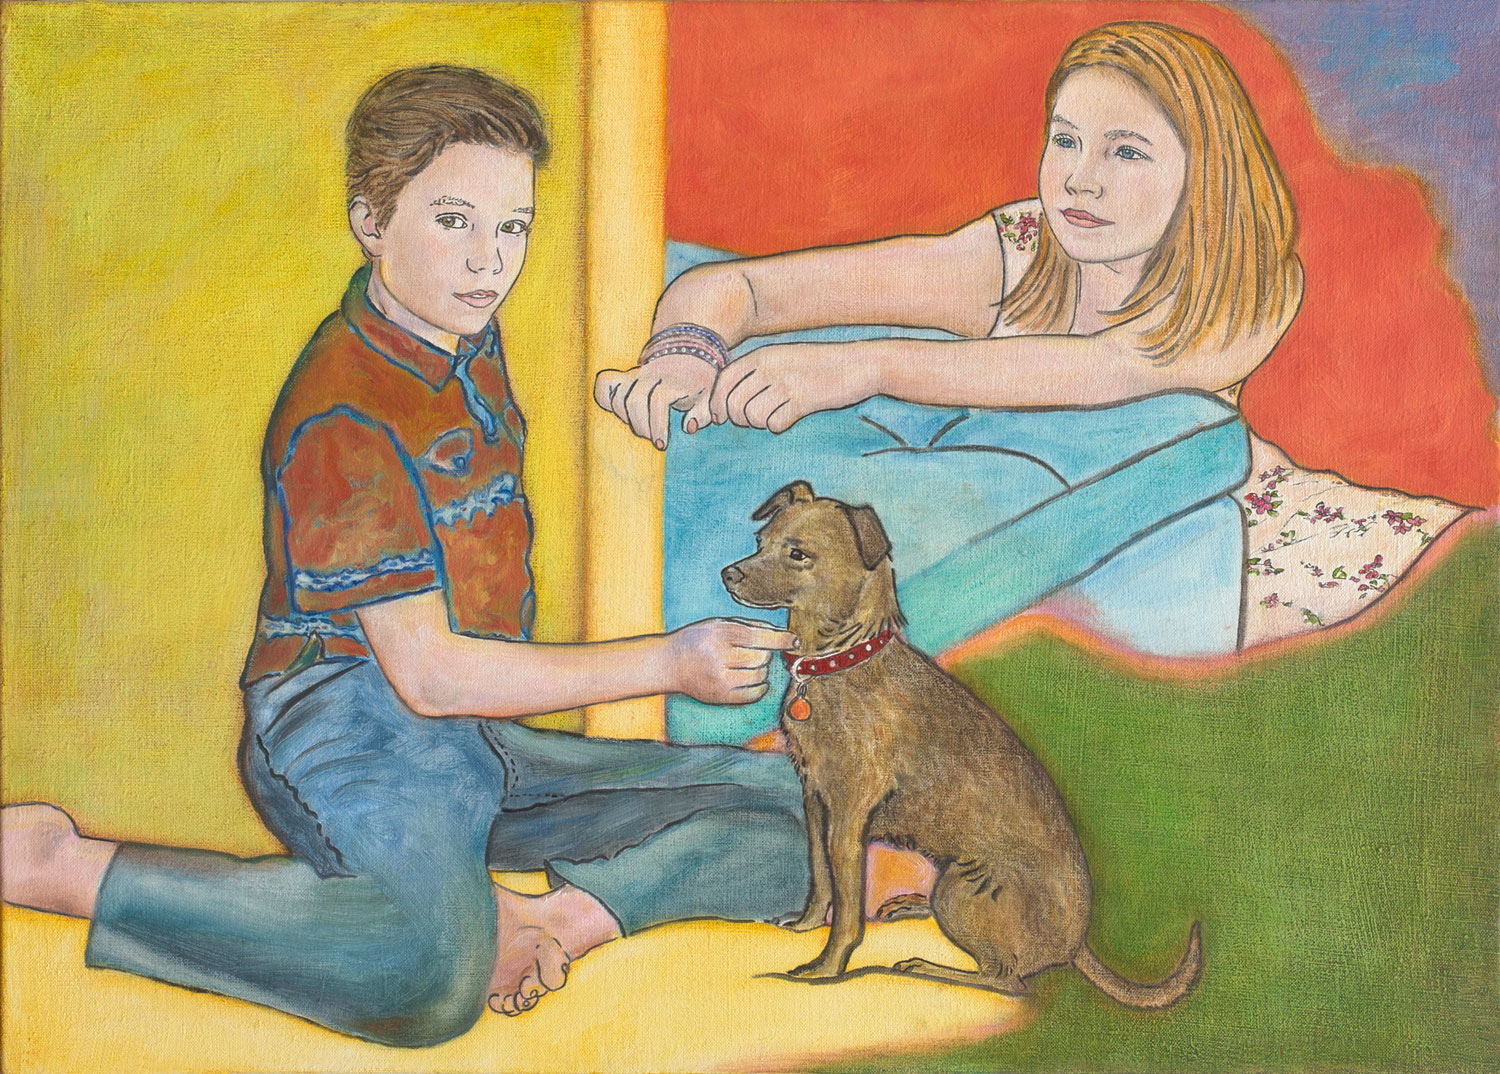 brother-sister-portrait-painter-artist-malayka-gormally.jpg